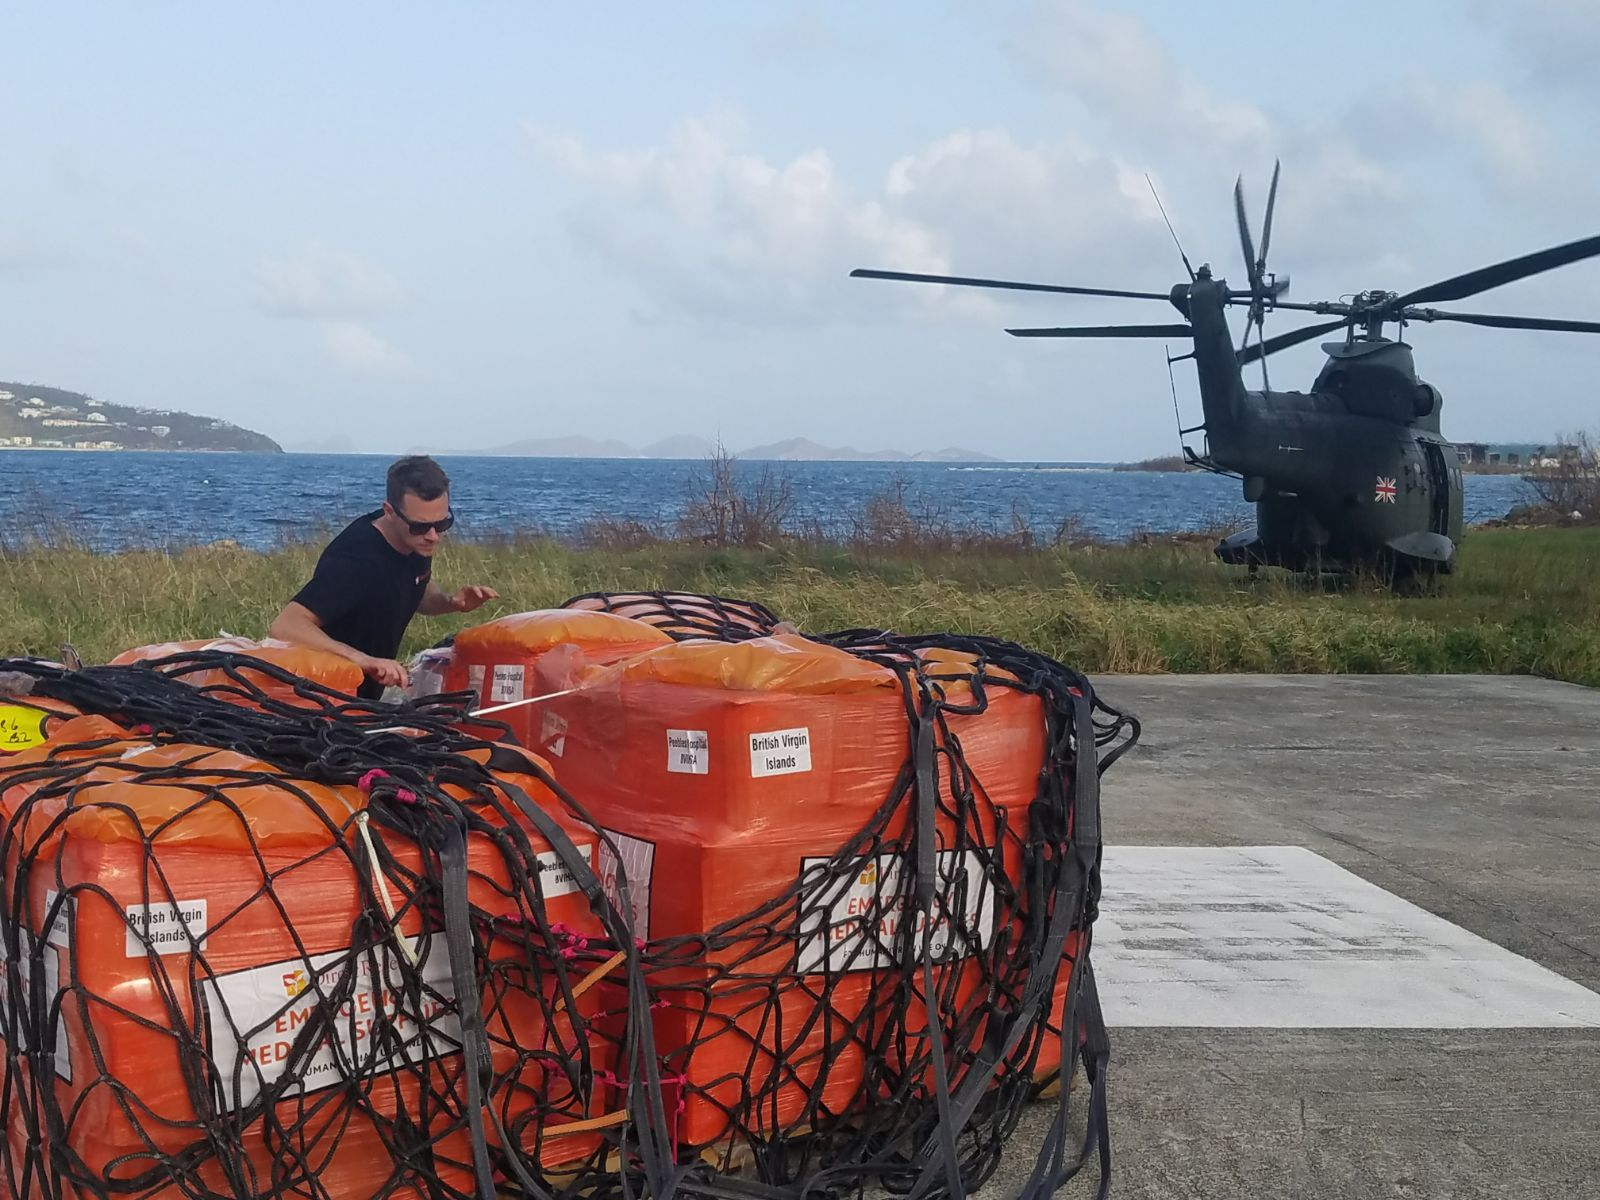 Medicines are delivered to Peebles Hospital in Tortola after being transported by the British Royal Navy. (Andrew MacCalla/Direct Relief)